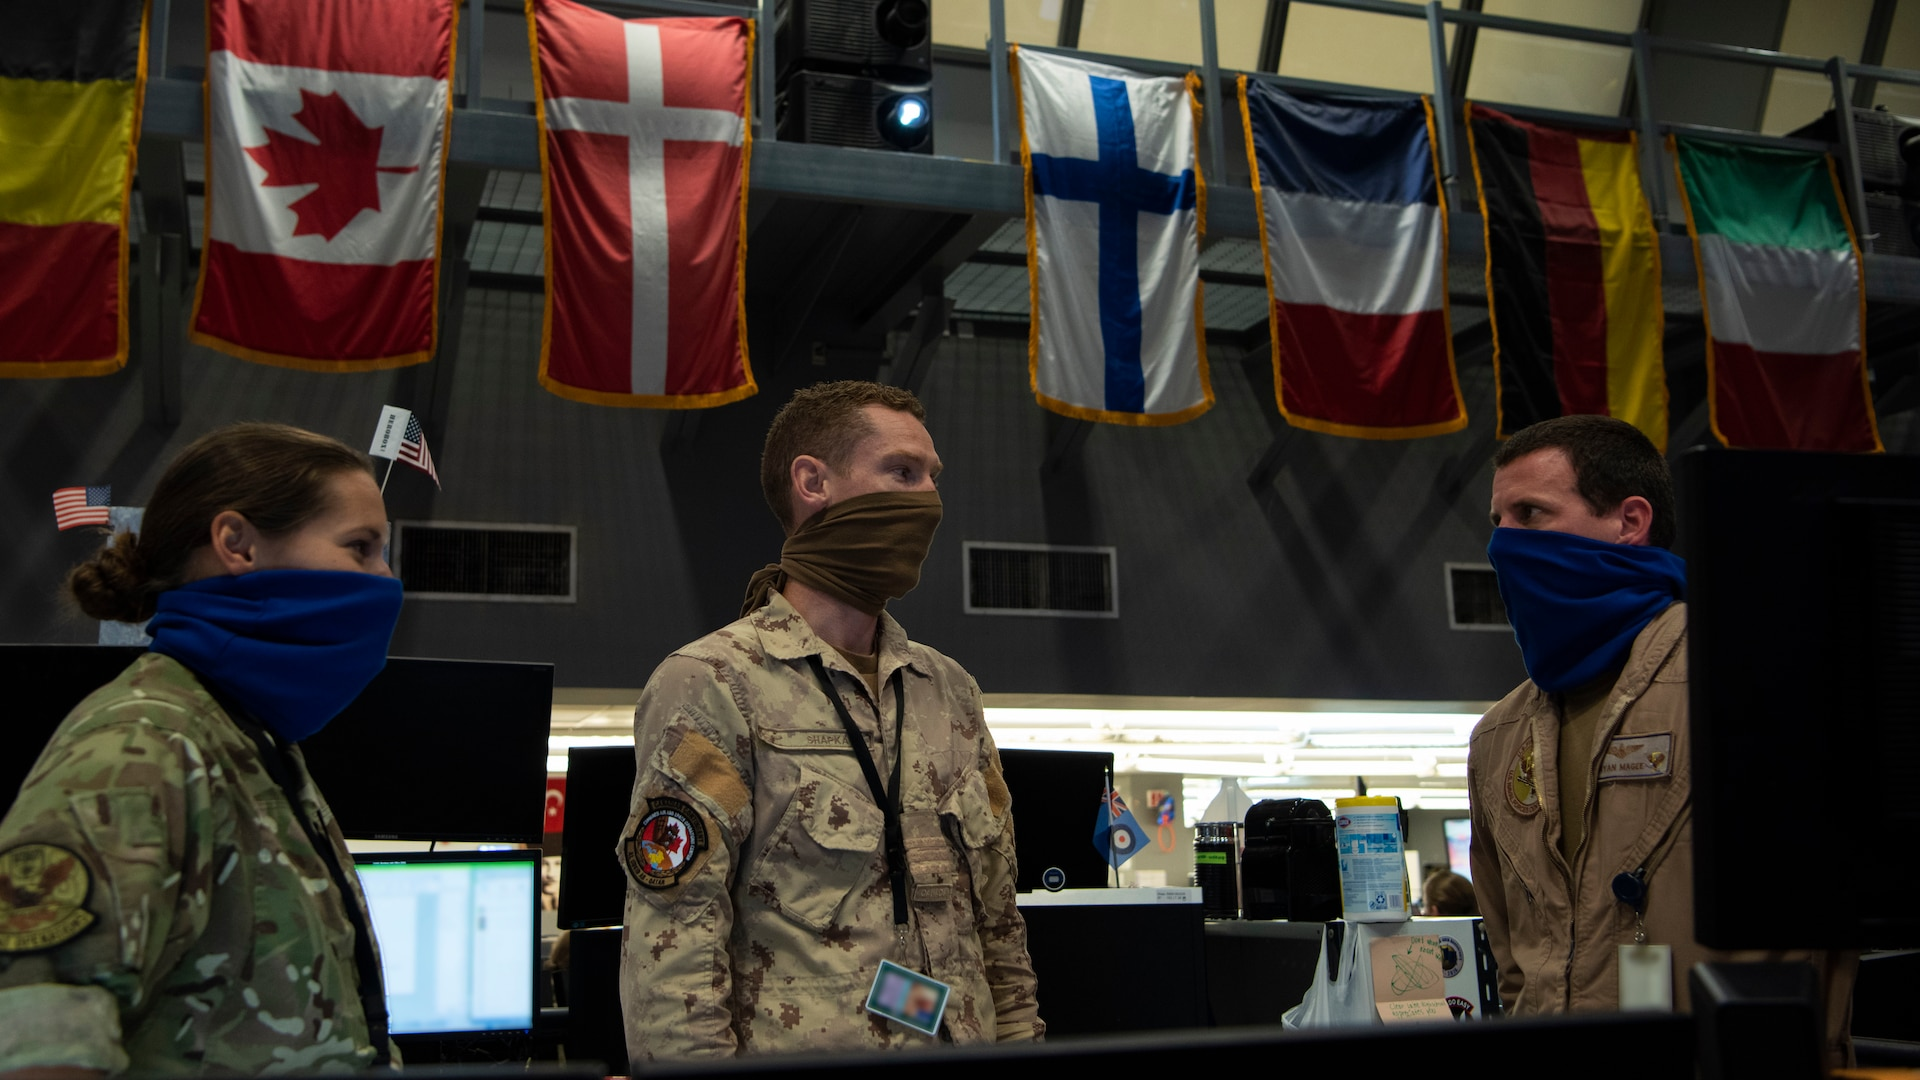 Coalition service members assigned to the Combined Air Operations Center discuss operations at Al Udeid Air Base, Qatar, April 20, 2020.